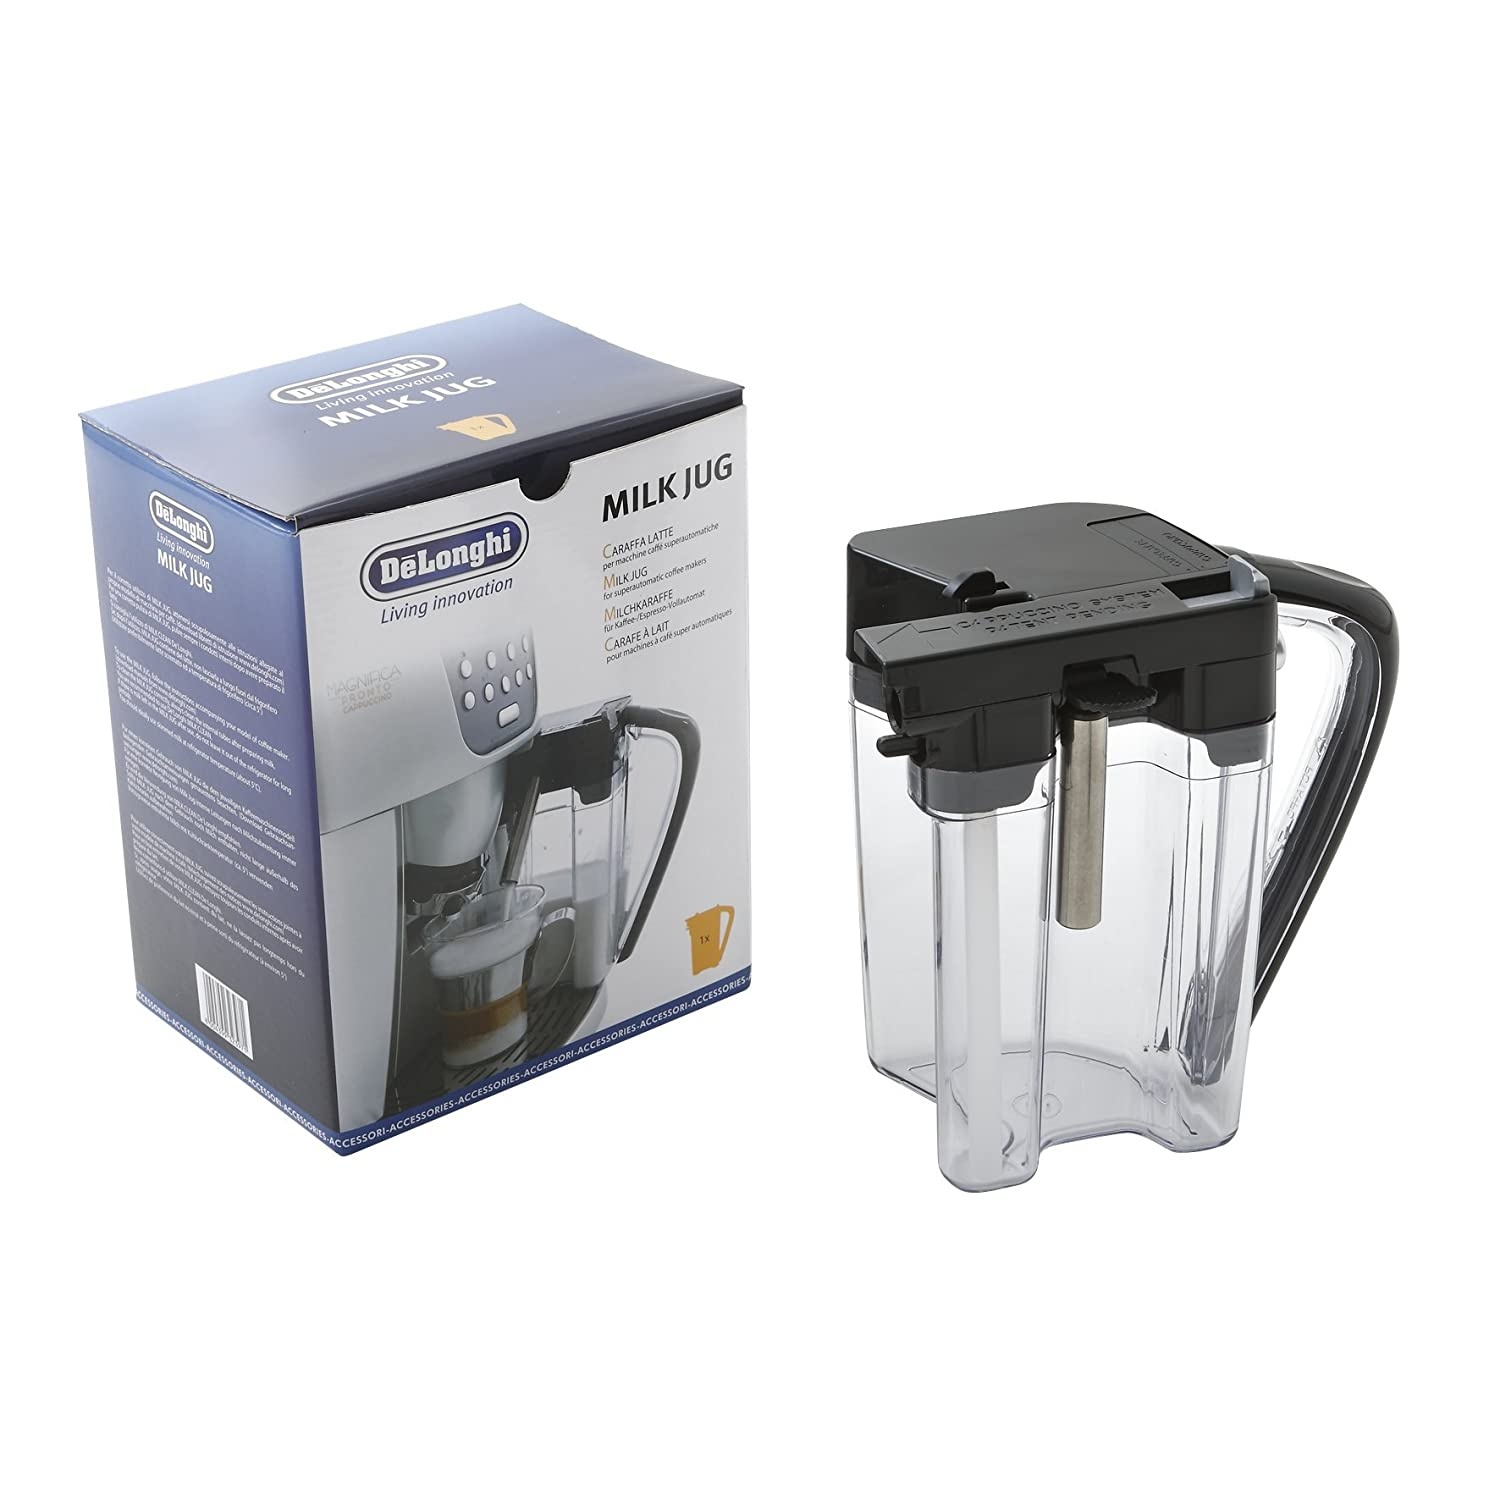 De'Longhi Coffee Maker Milk Jug for Perfecta Range Maddocks 55-DL-09